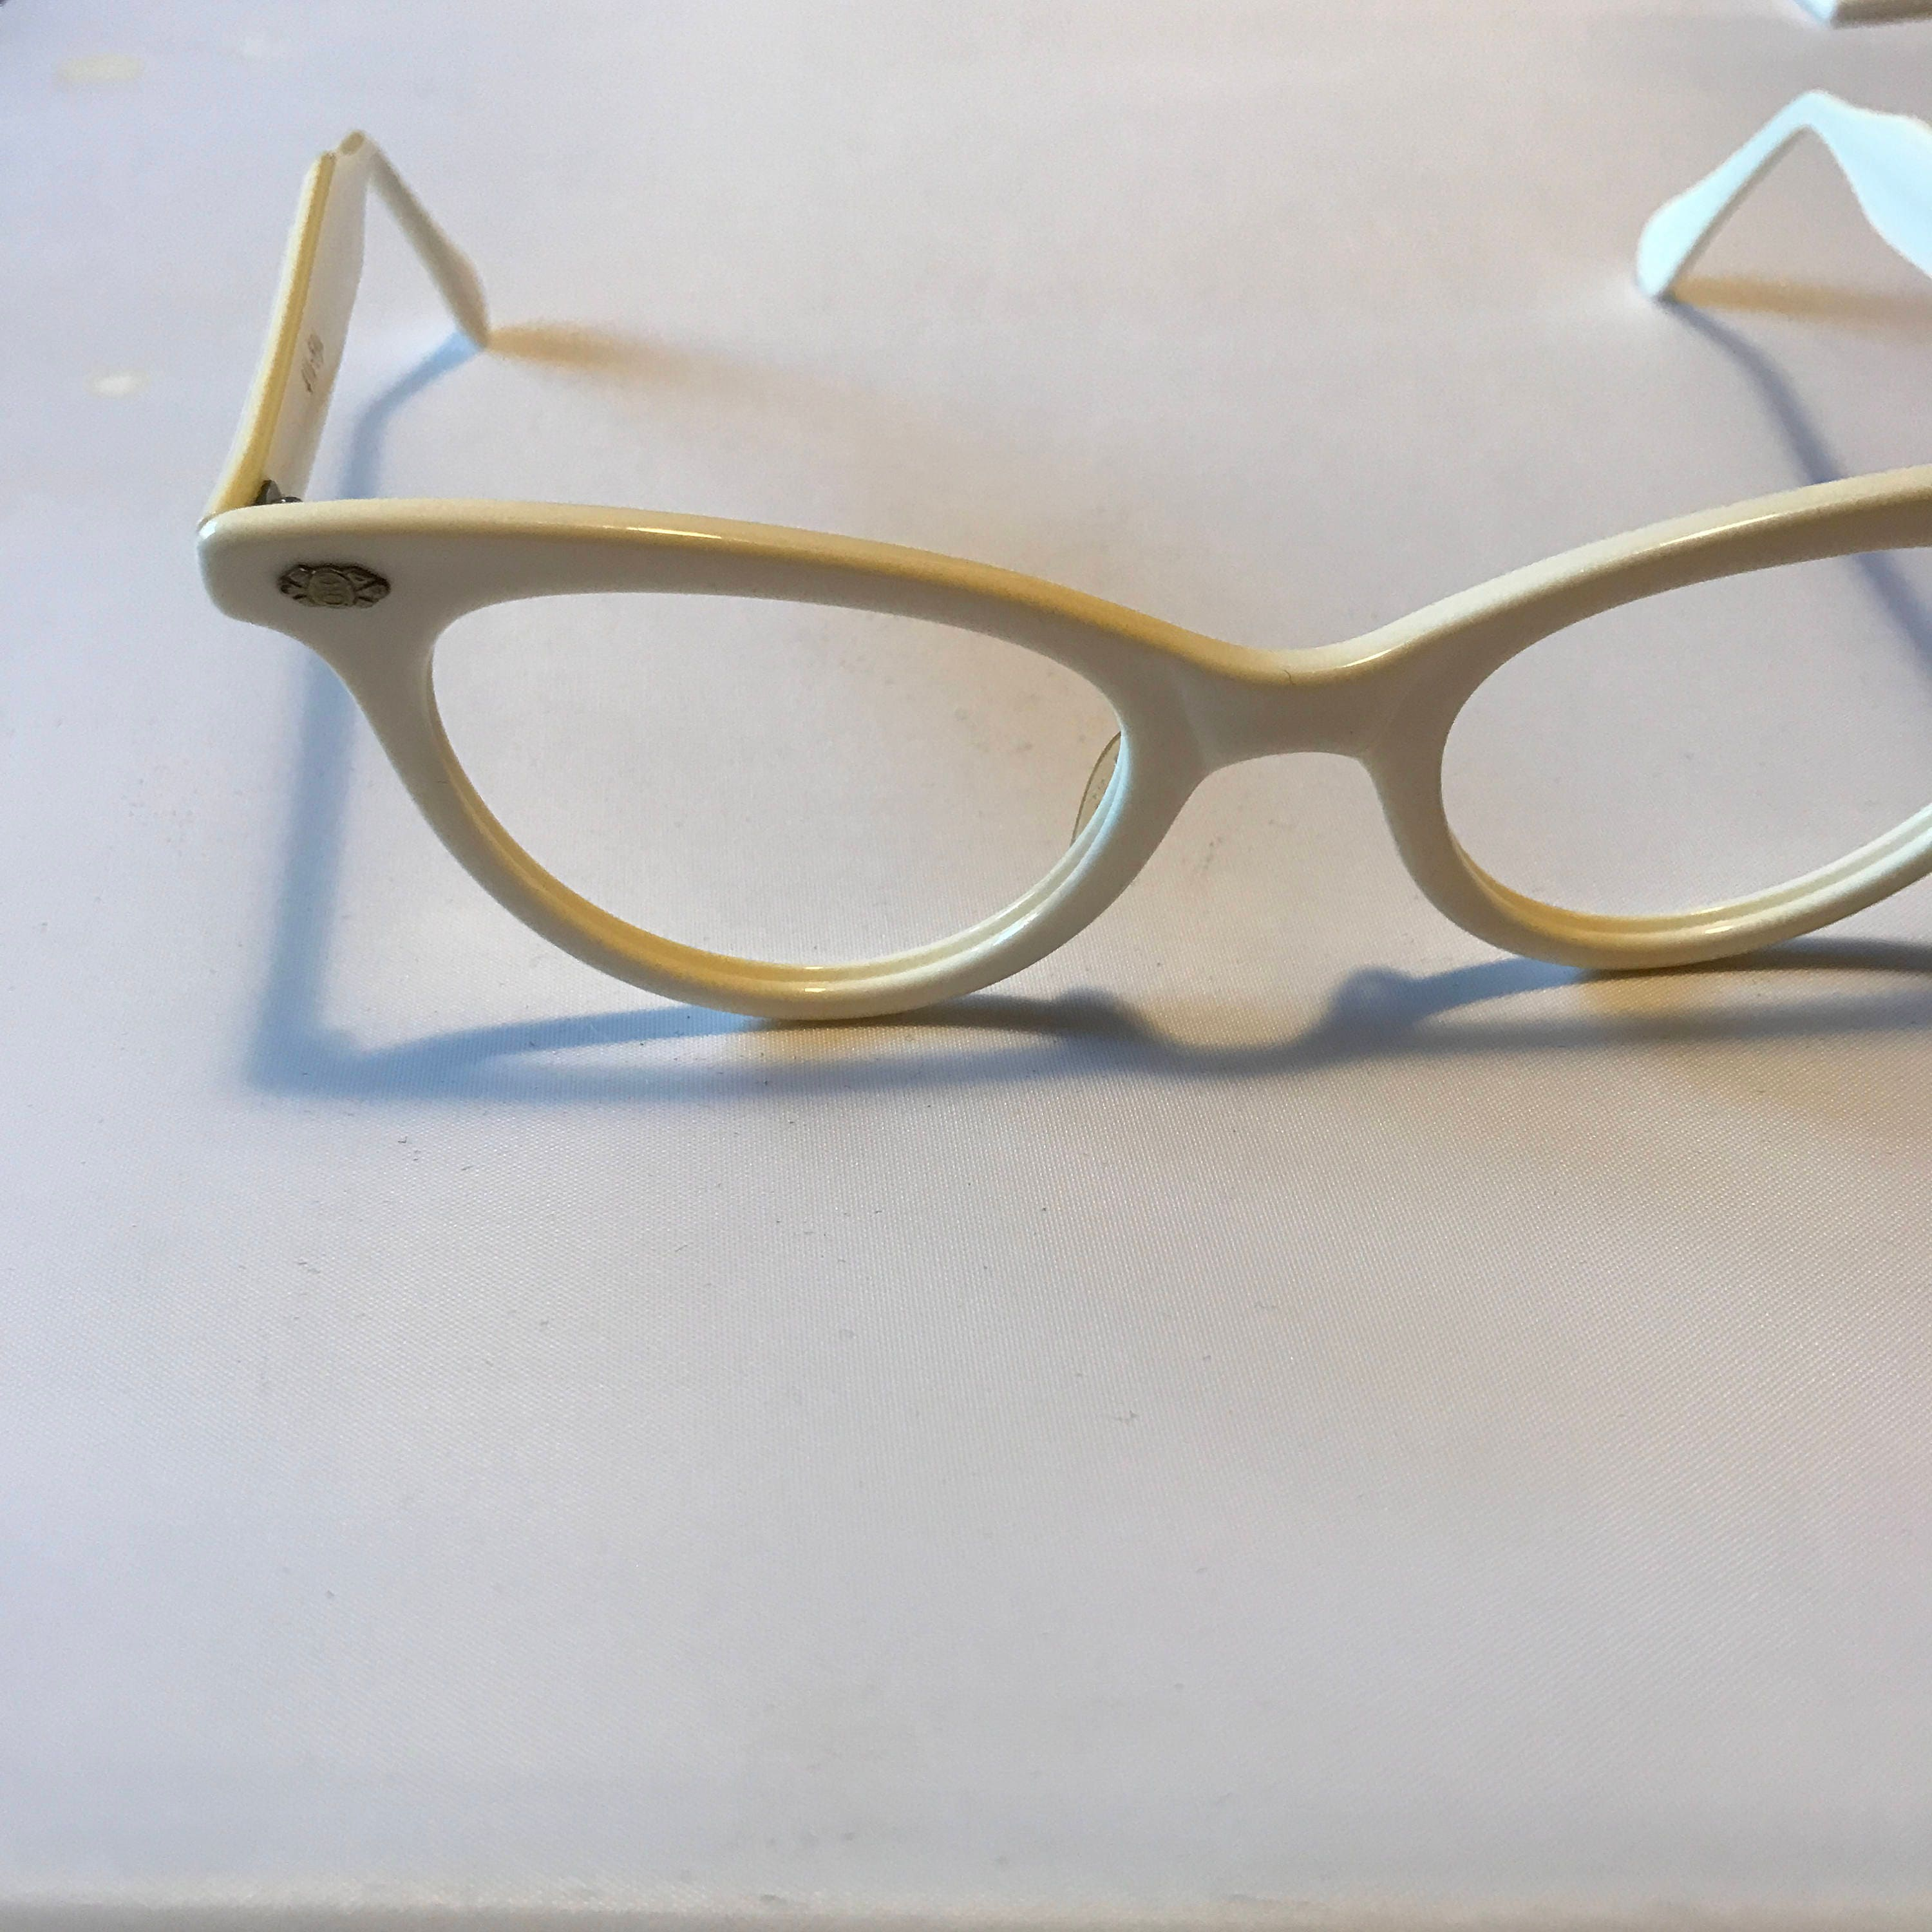 Cream Colored Eyeglasses, New Old Stock Glasses 1950s Cateye Glasses ...